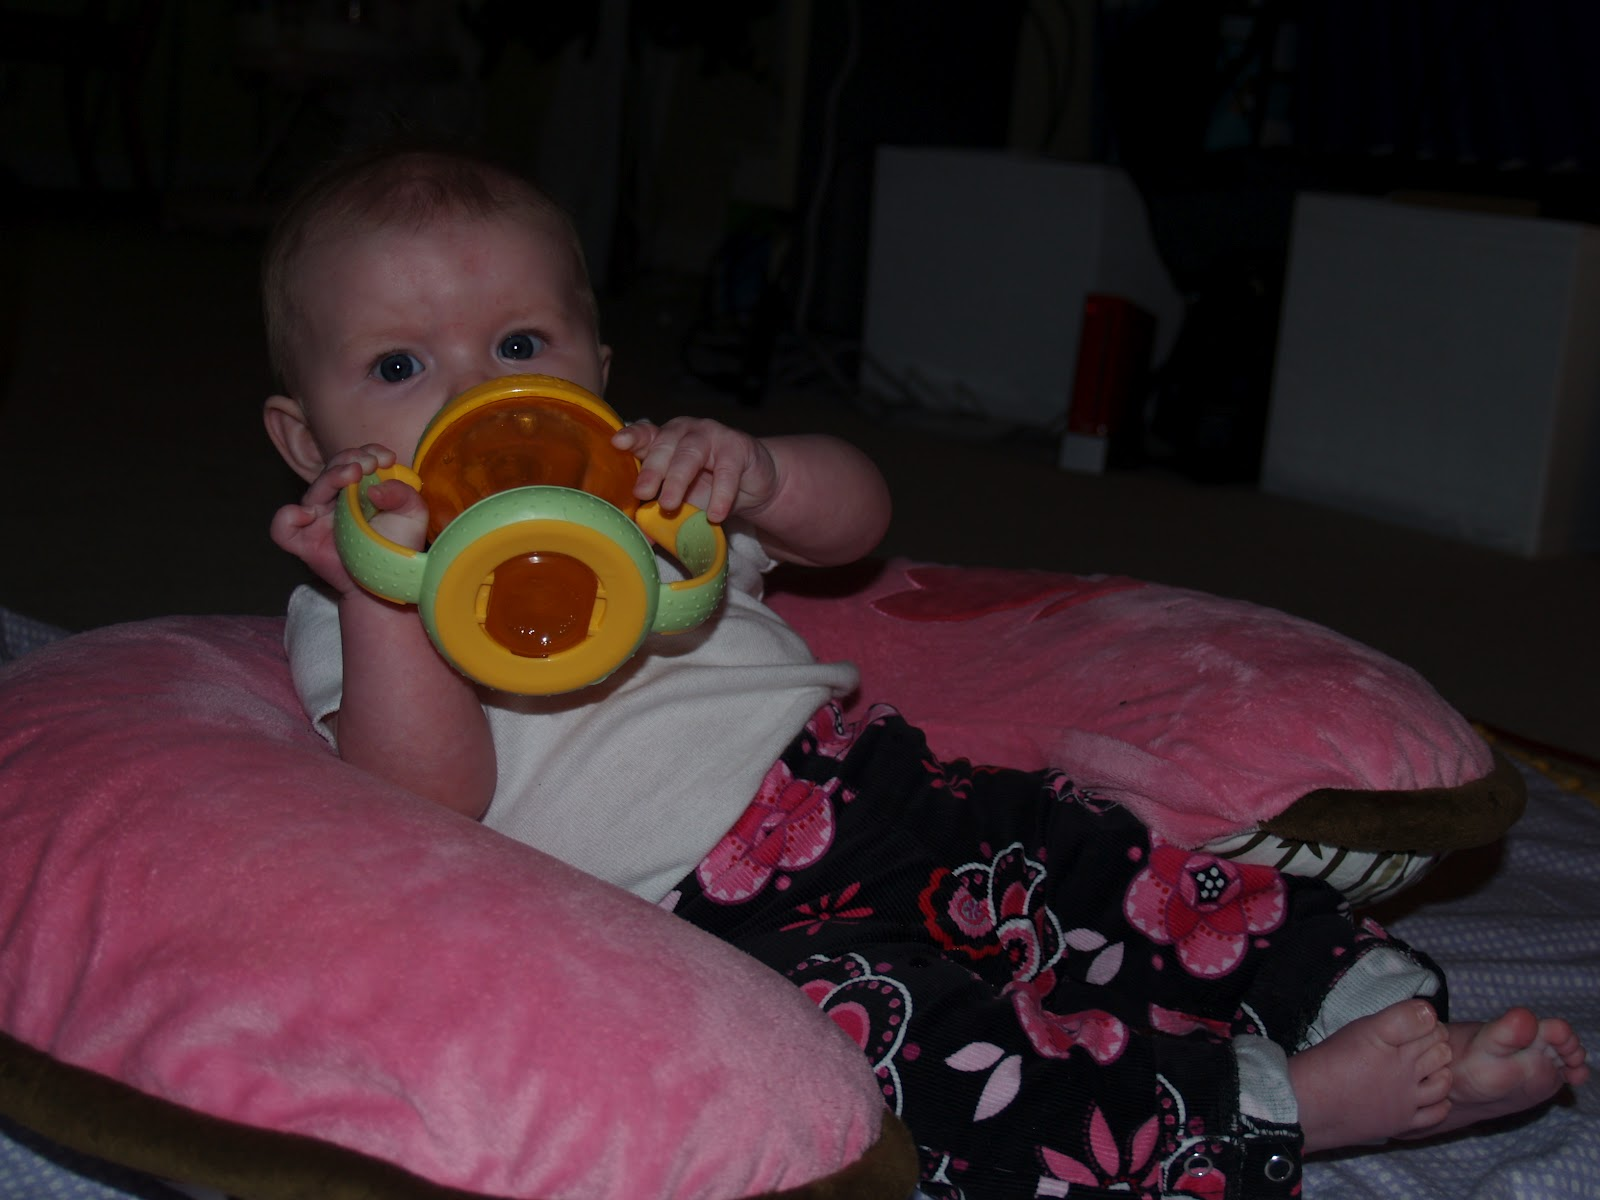 Baby Boppy Chair Recall Cover Rental Miami Florida Crafty Lineage